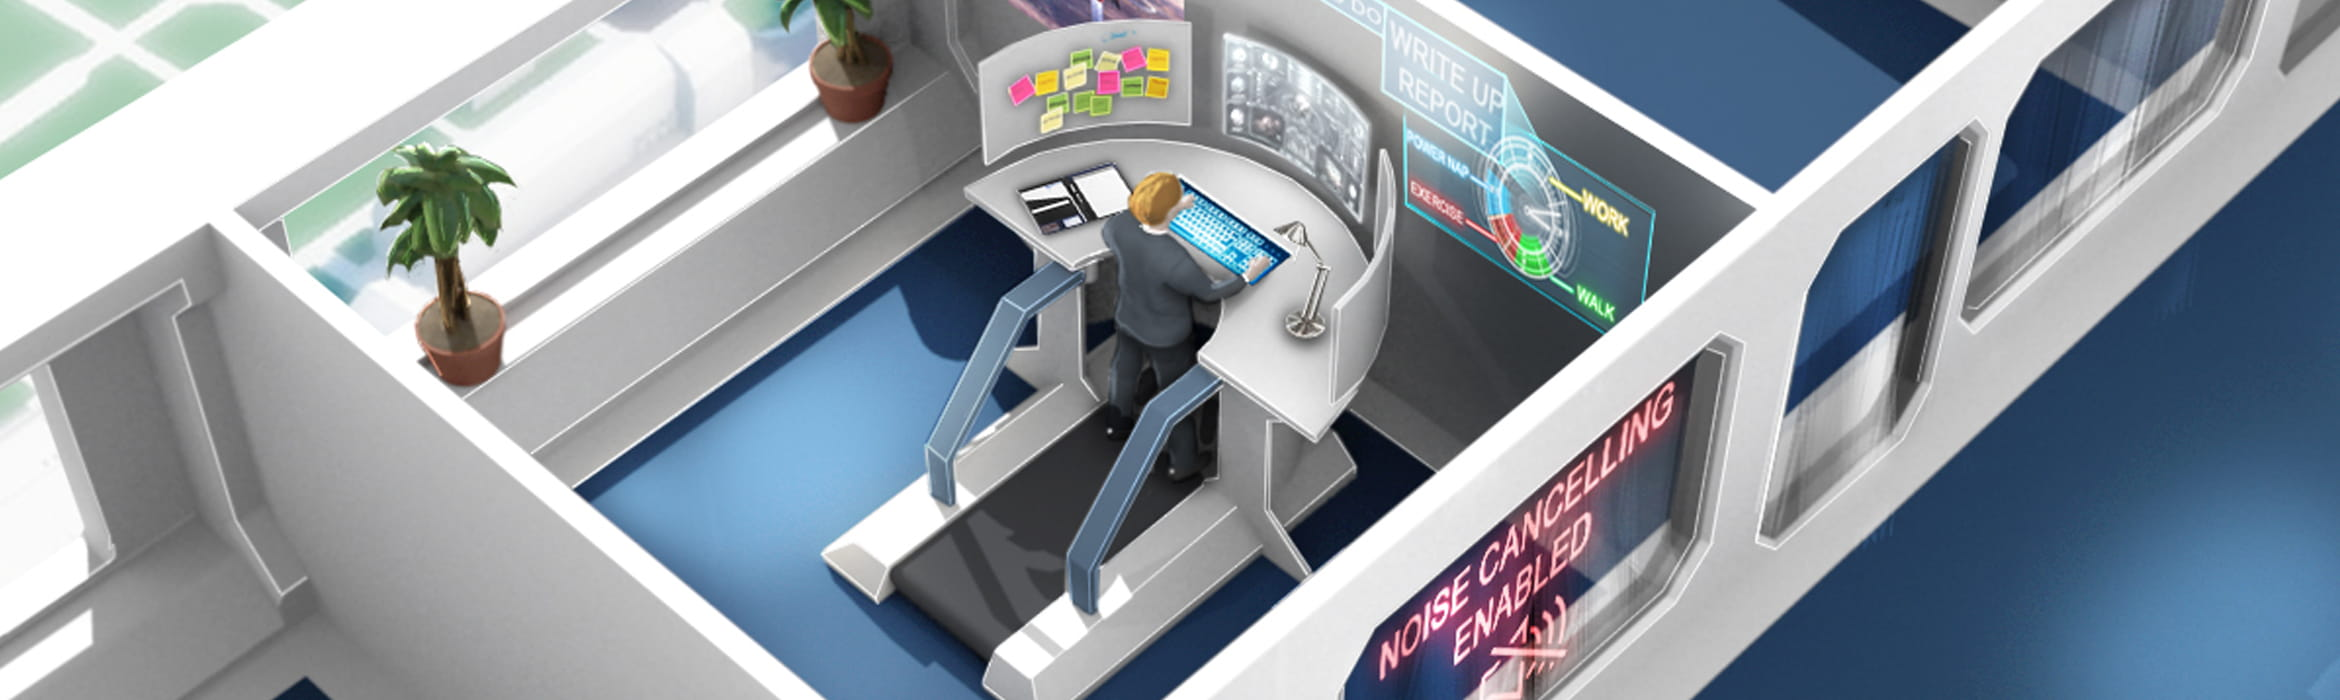 Future of the office: Anti-distraction tech and design for focus